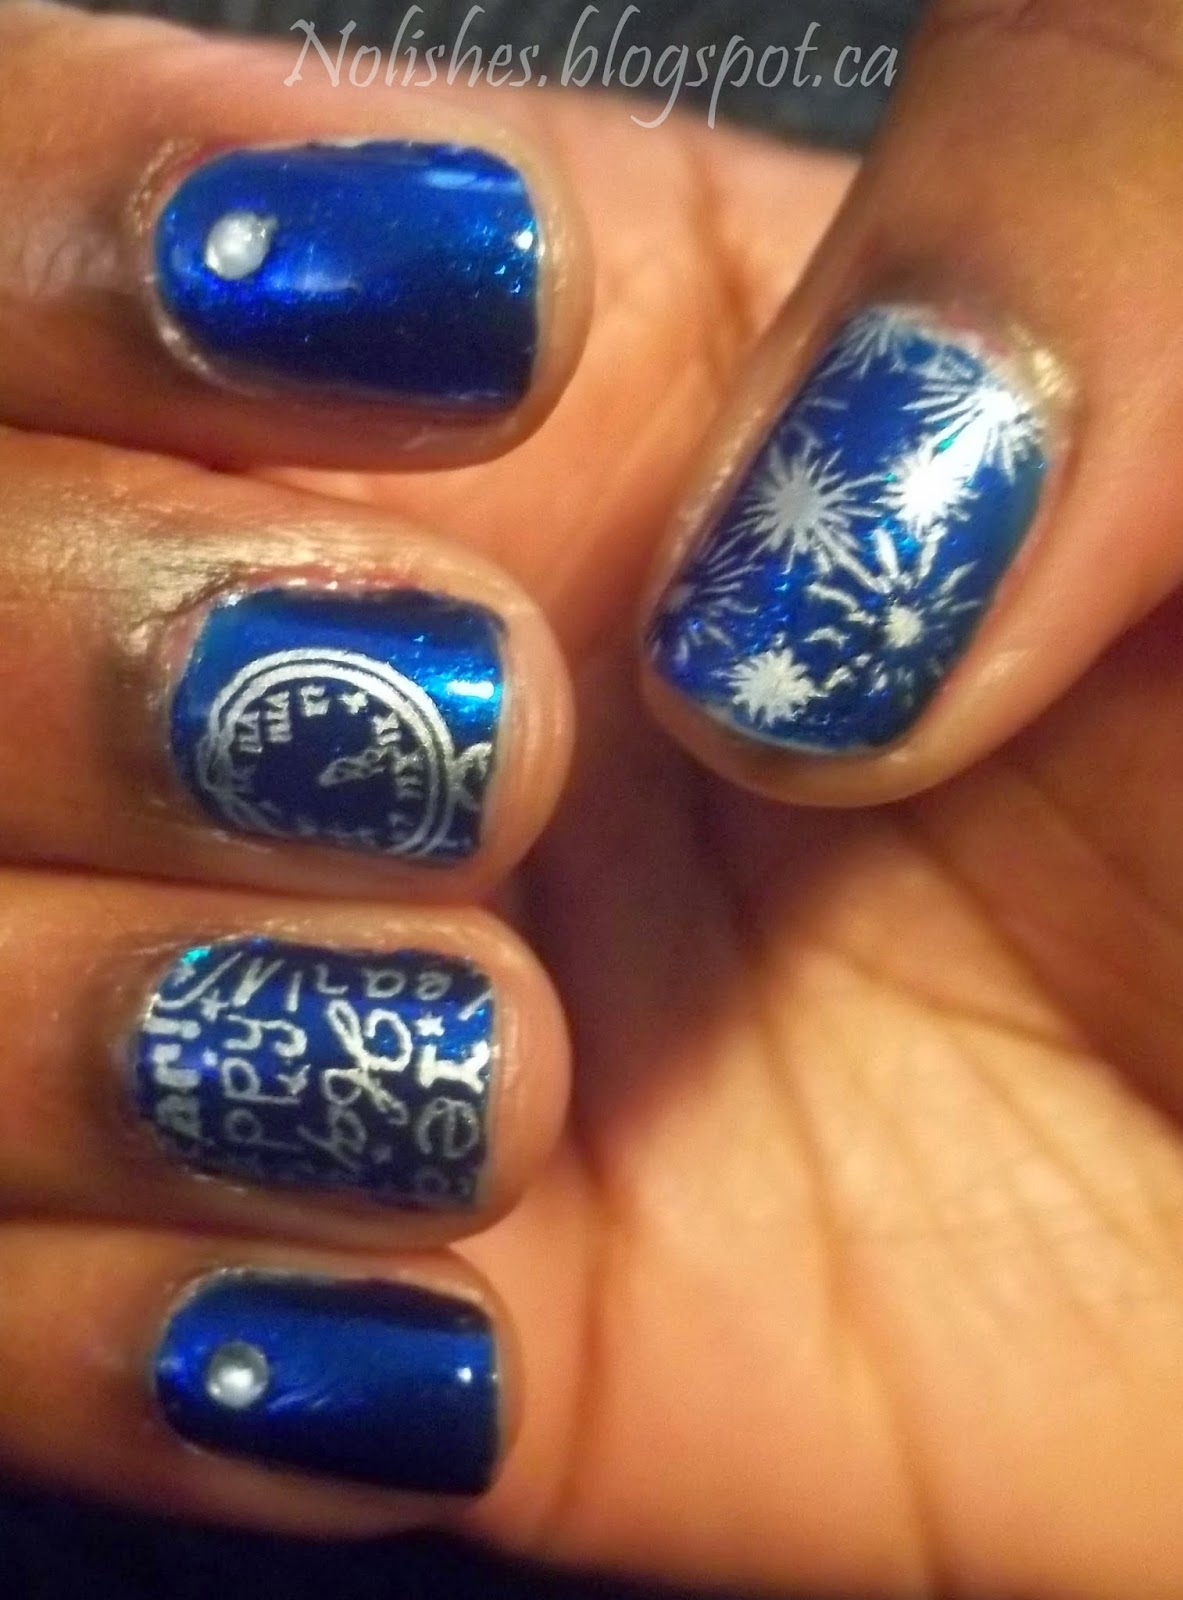 New Year's themed nail stamping manicure featuring a deep blue shimmery fleck polish stamped with New year's themed images in silver.